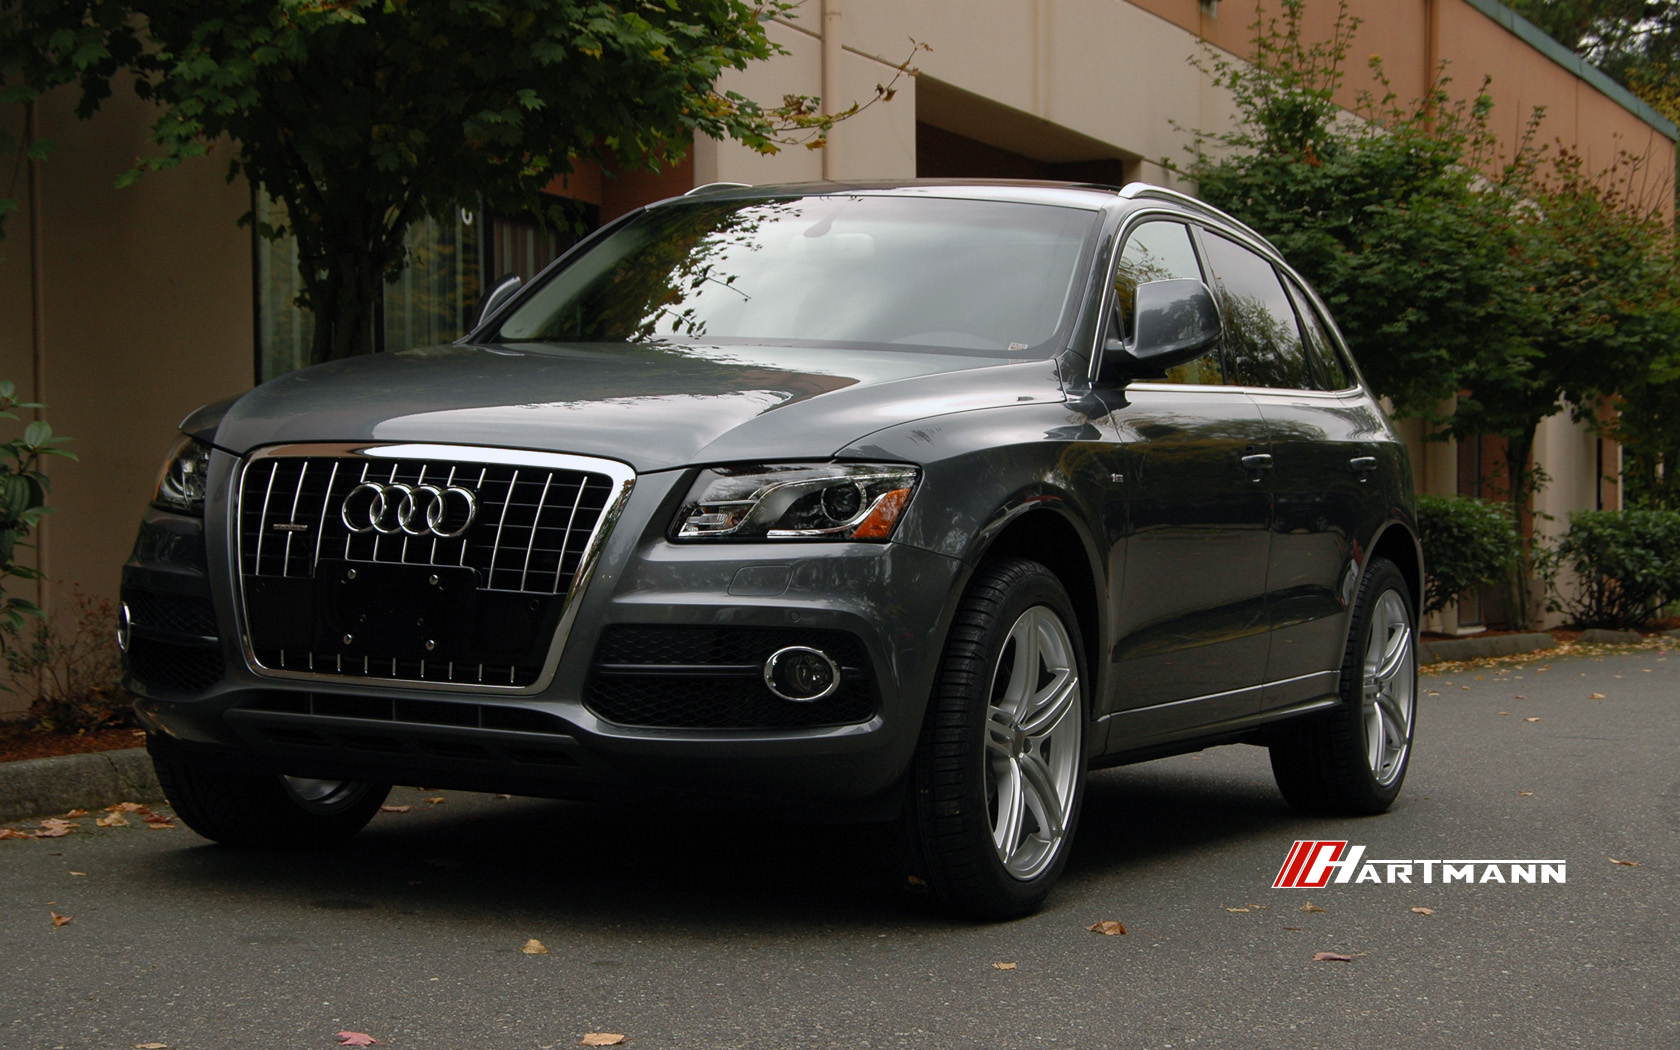 Audi b8 q5 hartmann wheels hrs6 204 gs 20 jd1 hwm